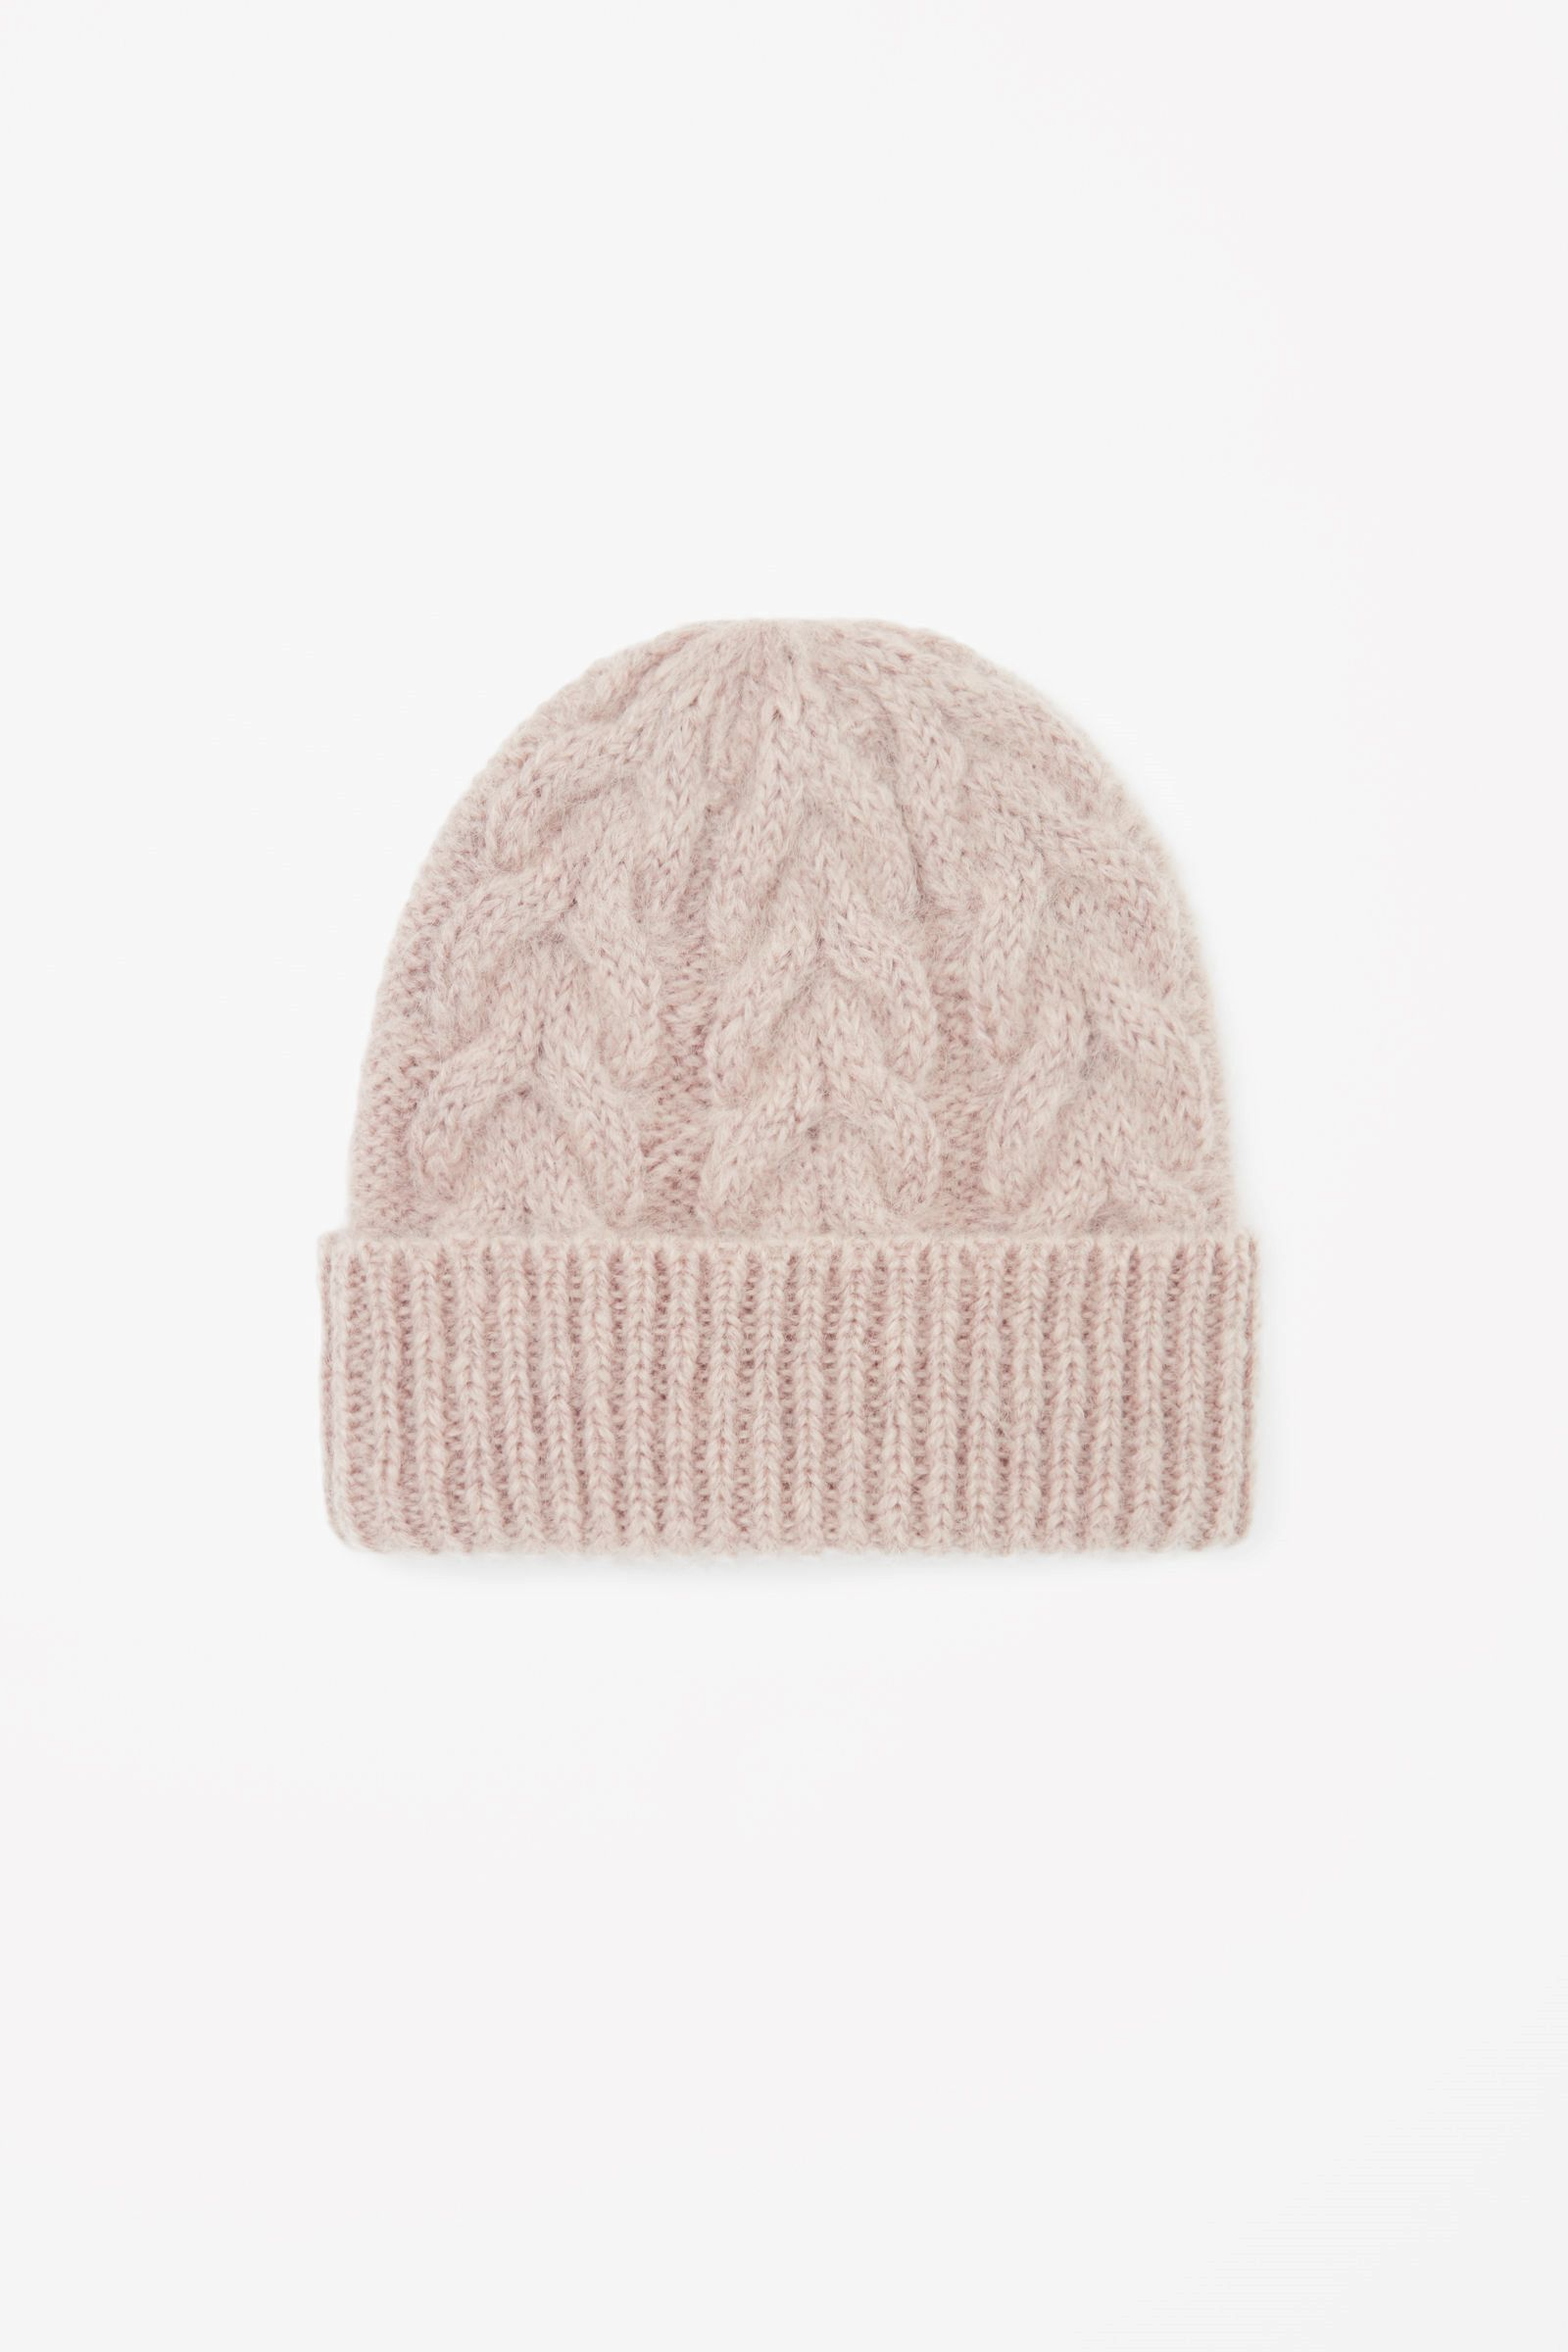 7a10398c615 COS image 4 of Cable-knit hat in Pink Yellowish Light